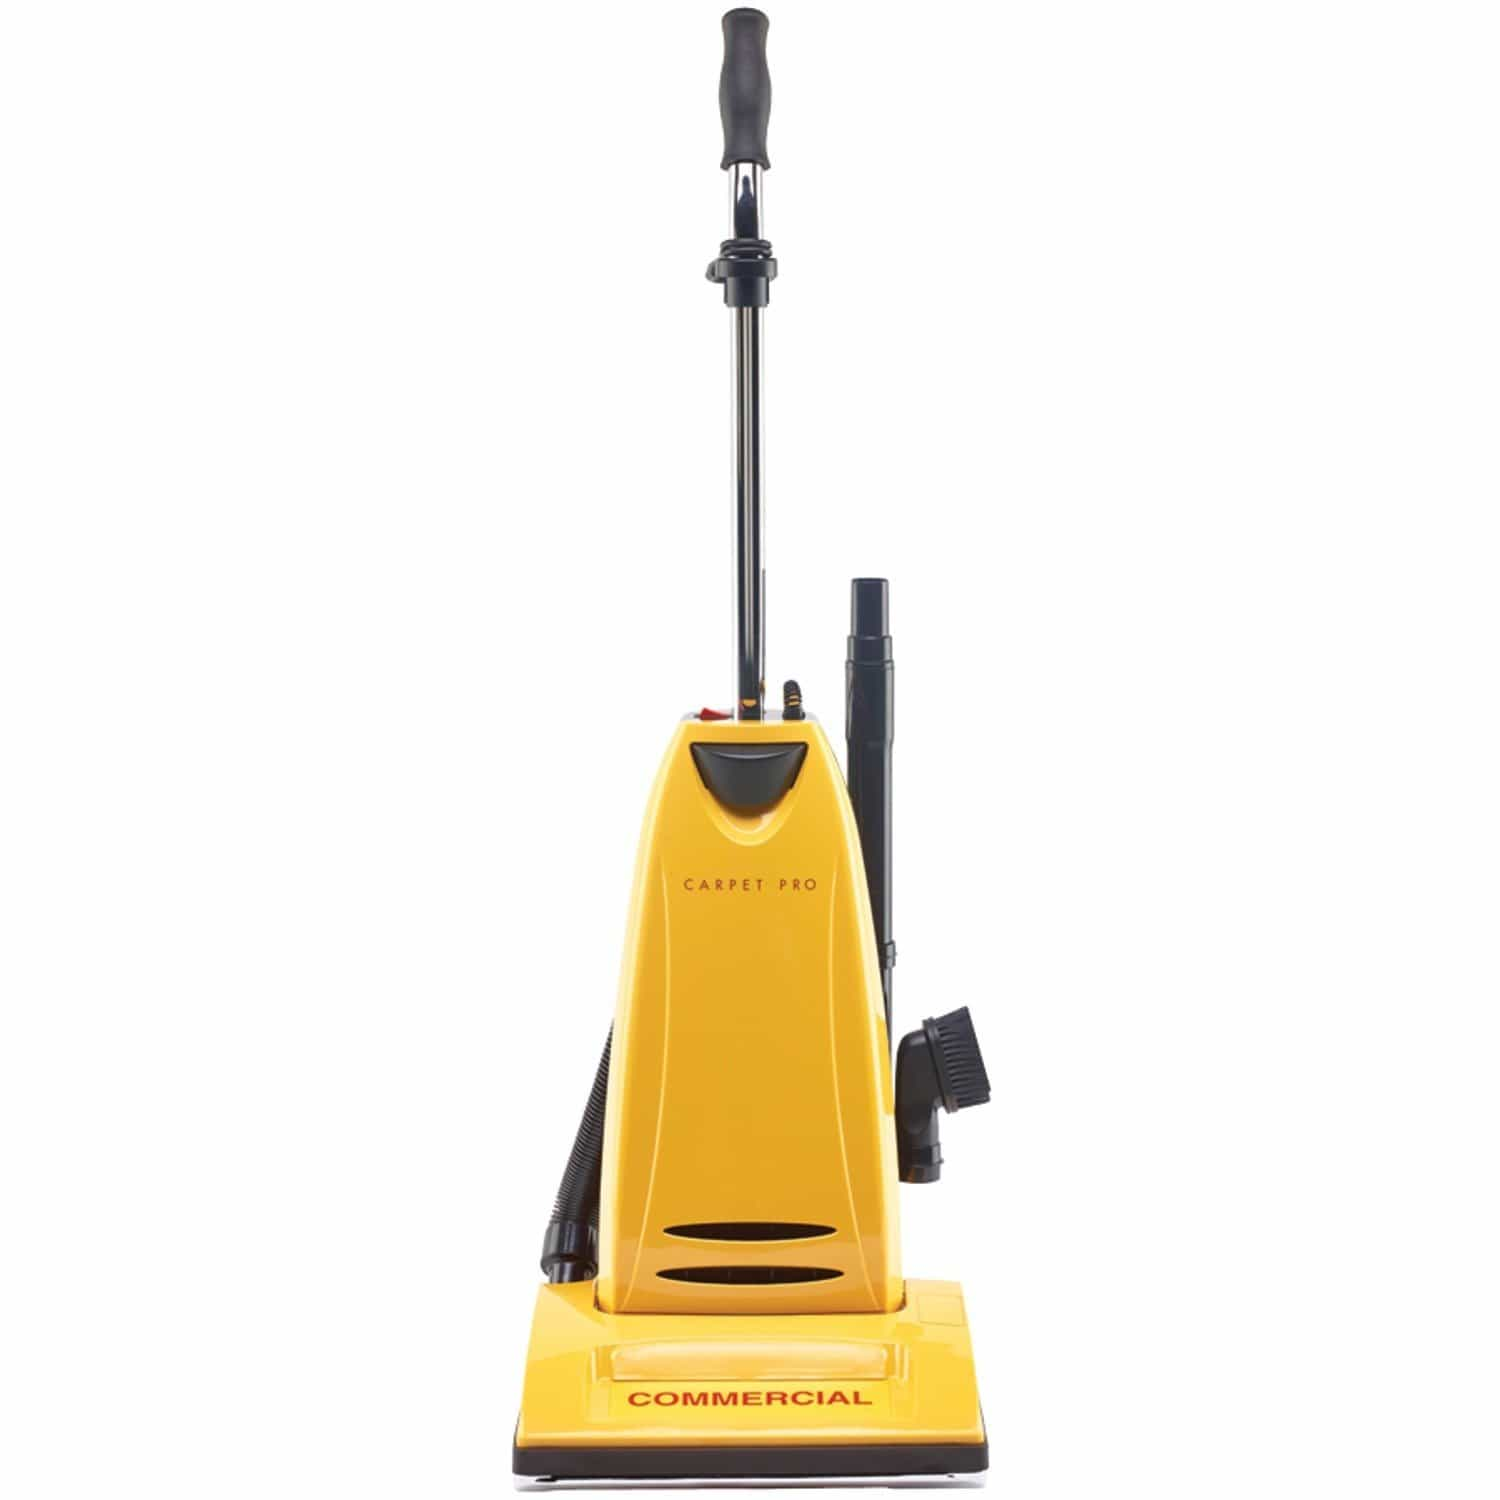 Carpet Pro CPU-2T Upright Vacuum Cleaner